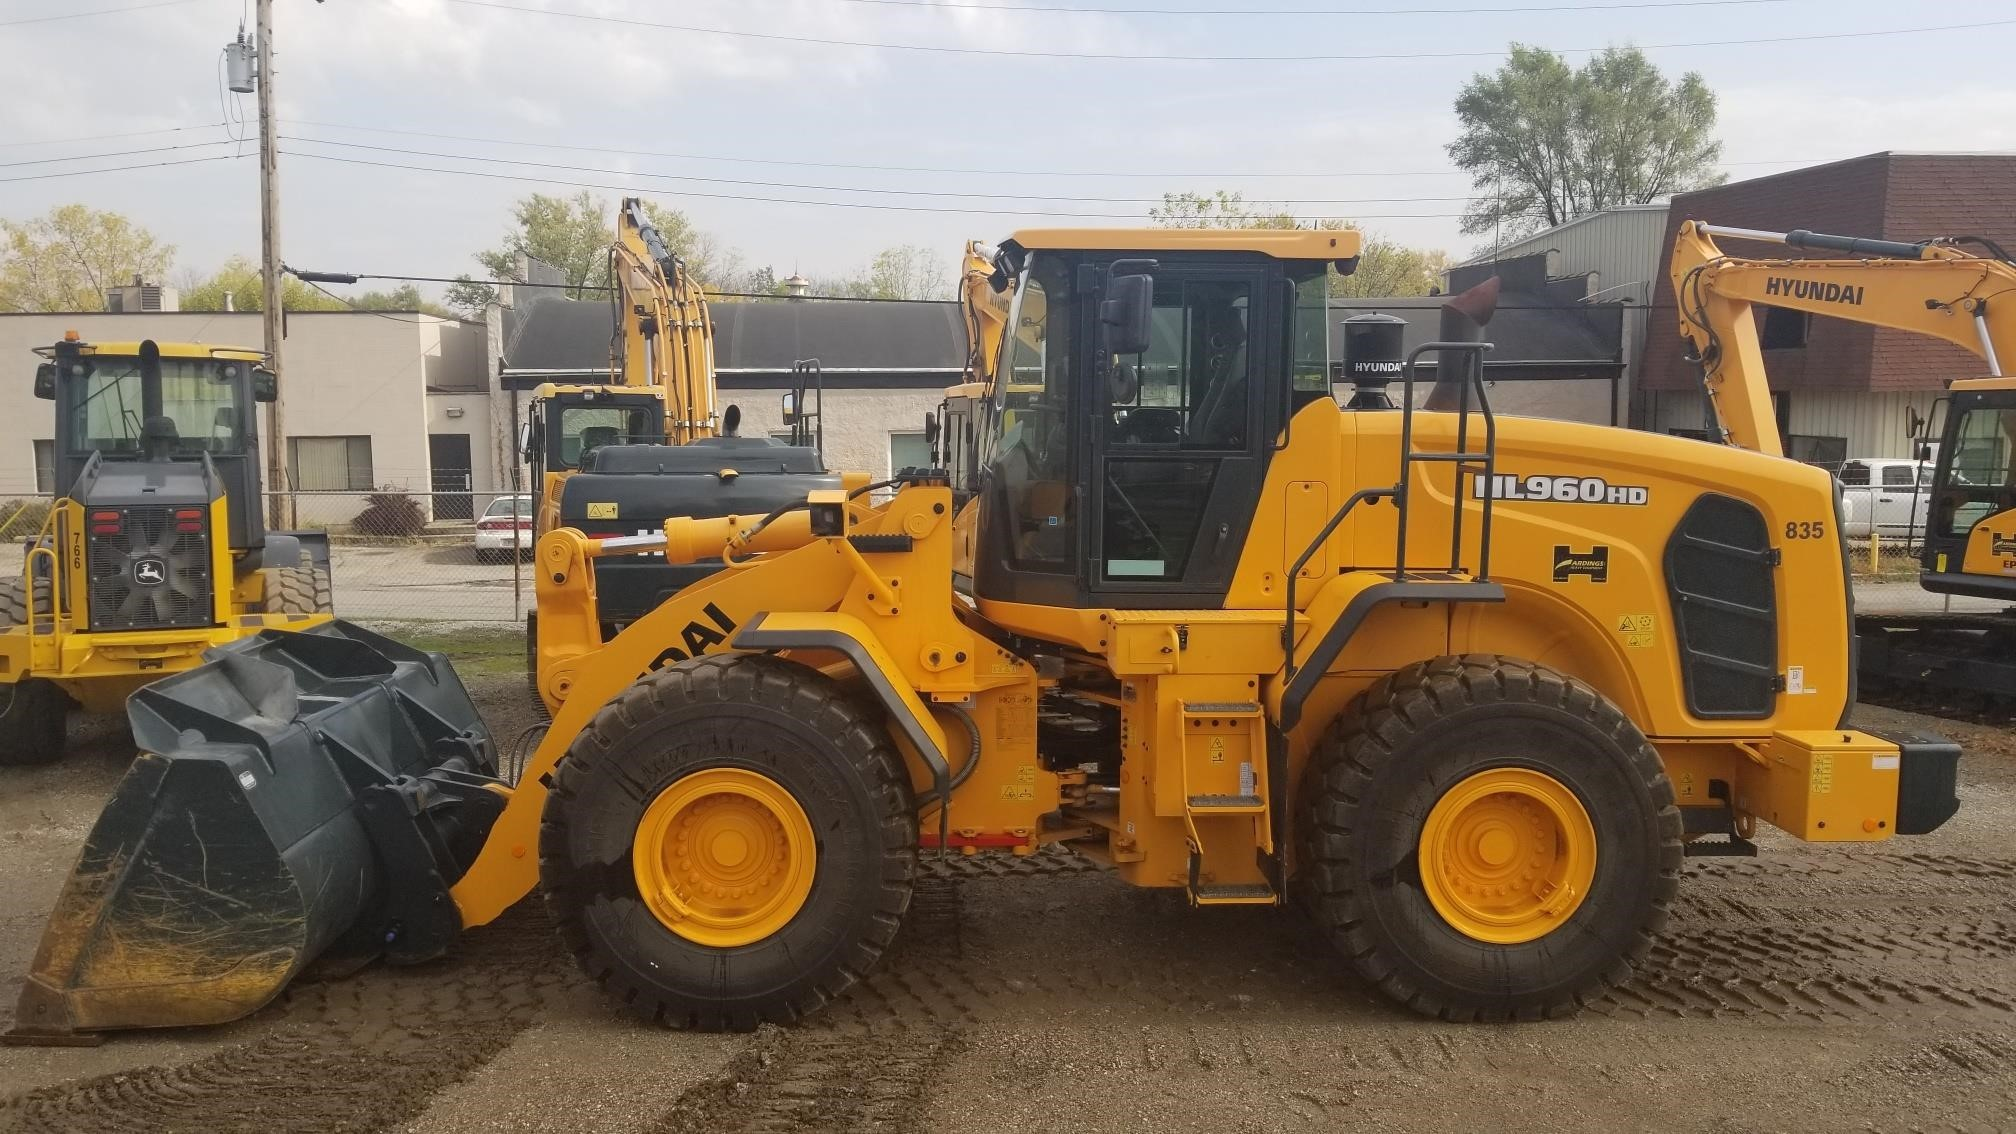 Used, 2018, HYUNDAI, HL960HD, Wheel Loaders